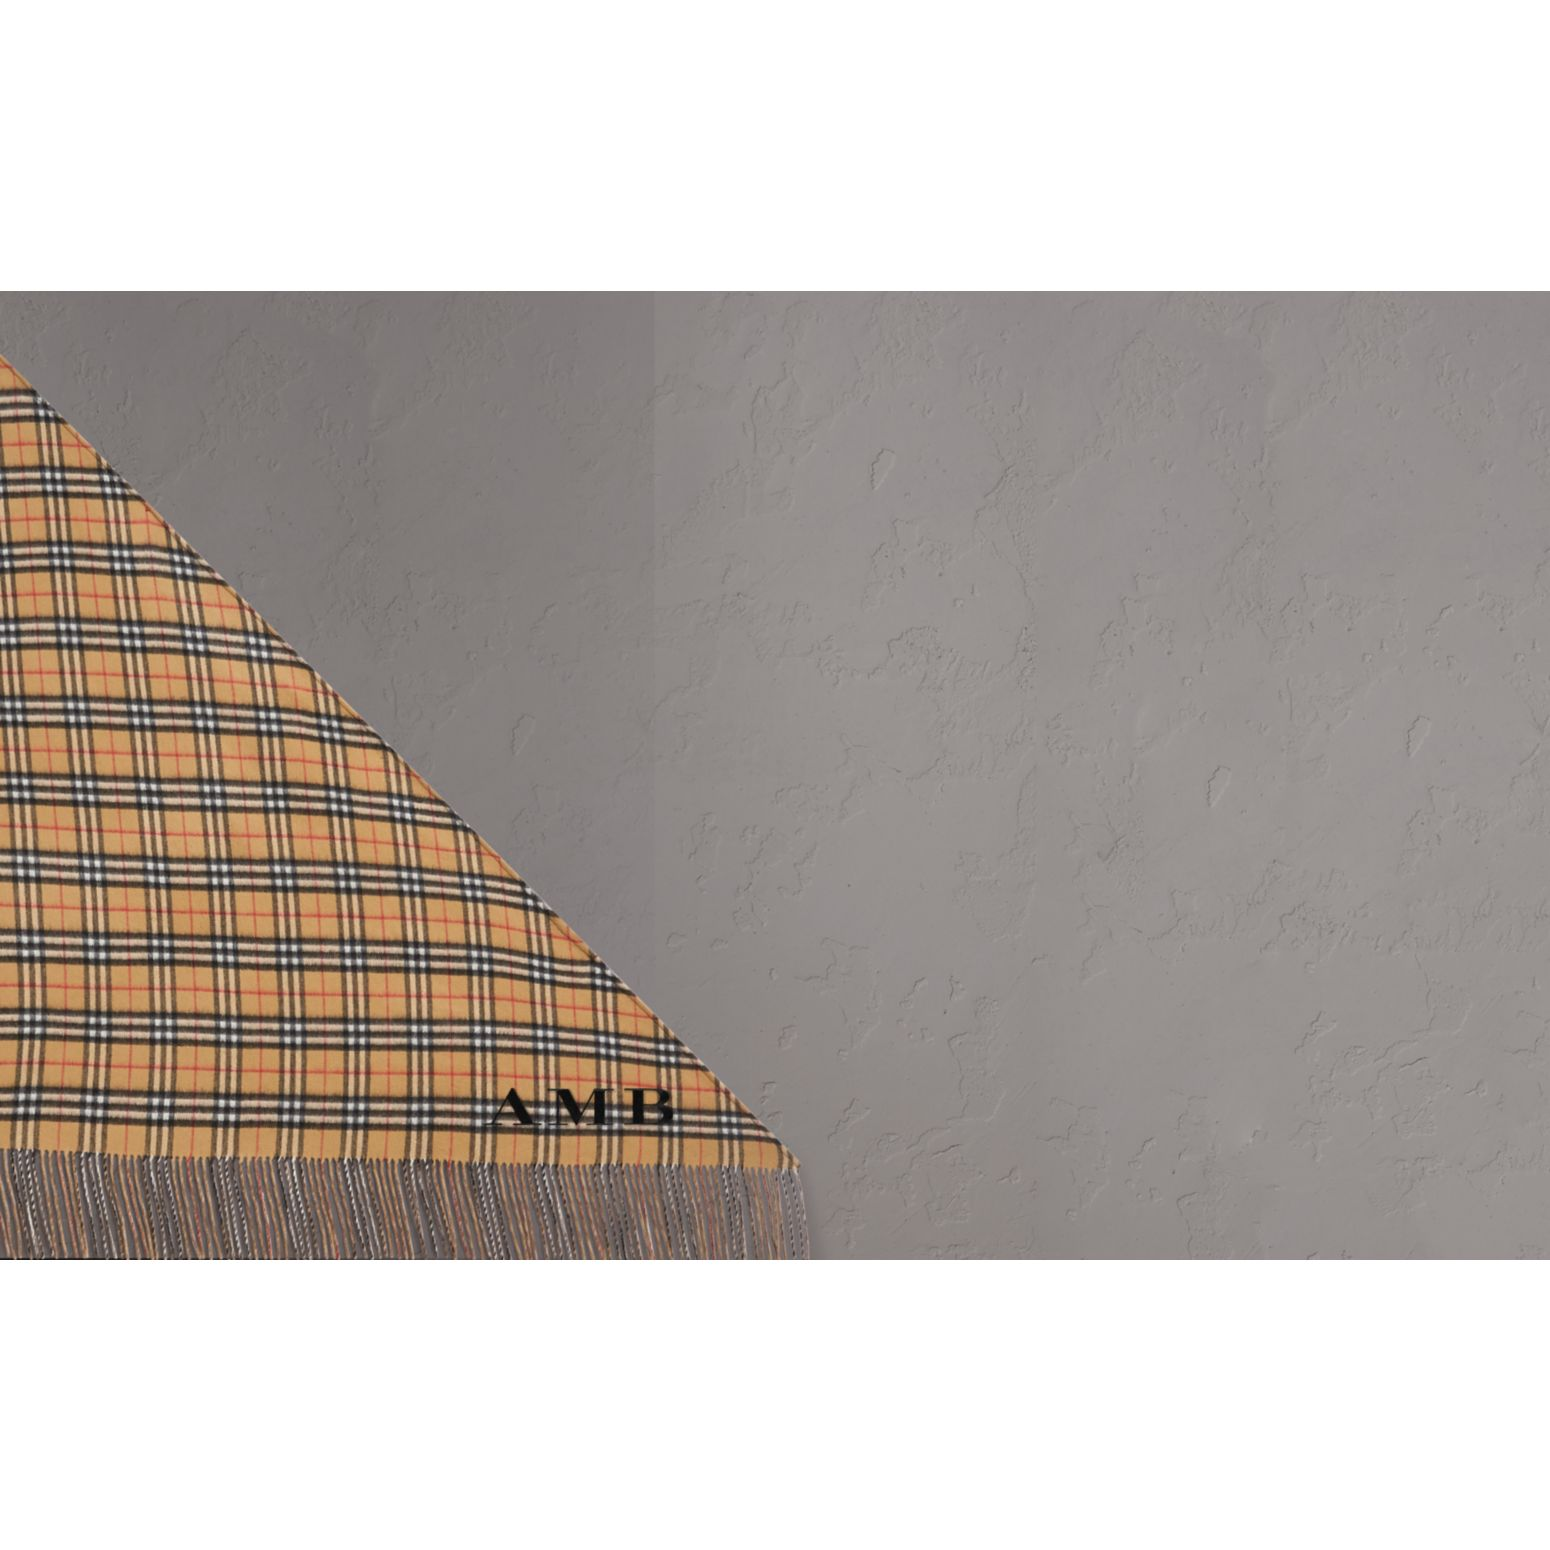 The Burberry Bandana in Vintage Check Cashmere in Sandstone | Burberry - gallery image 2